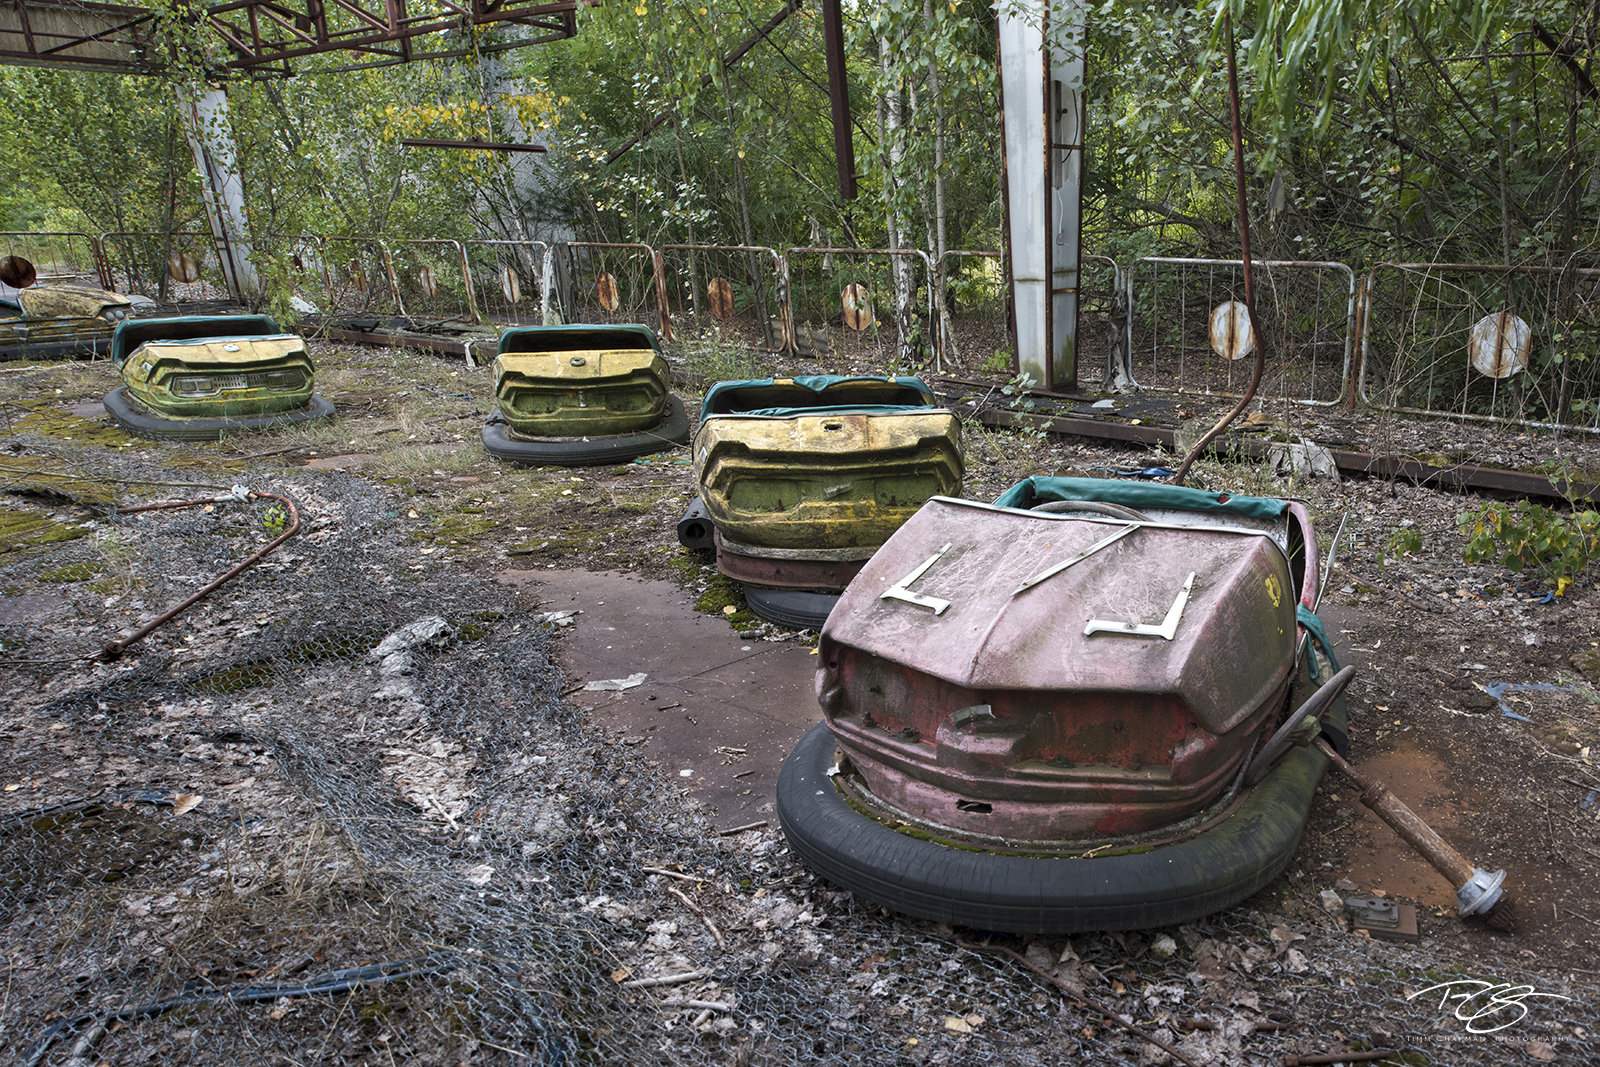 chernobyl, chornobyl, pripyat, exclusion zone, abandoned, forgotten, wasteland, radioactive, decay, peeling paint, moss, reclamation, bumper car, dodgem, amusement park, dodge em, yellow, red, fair, s, photo